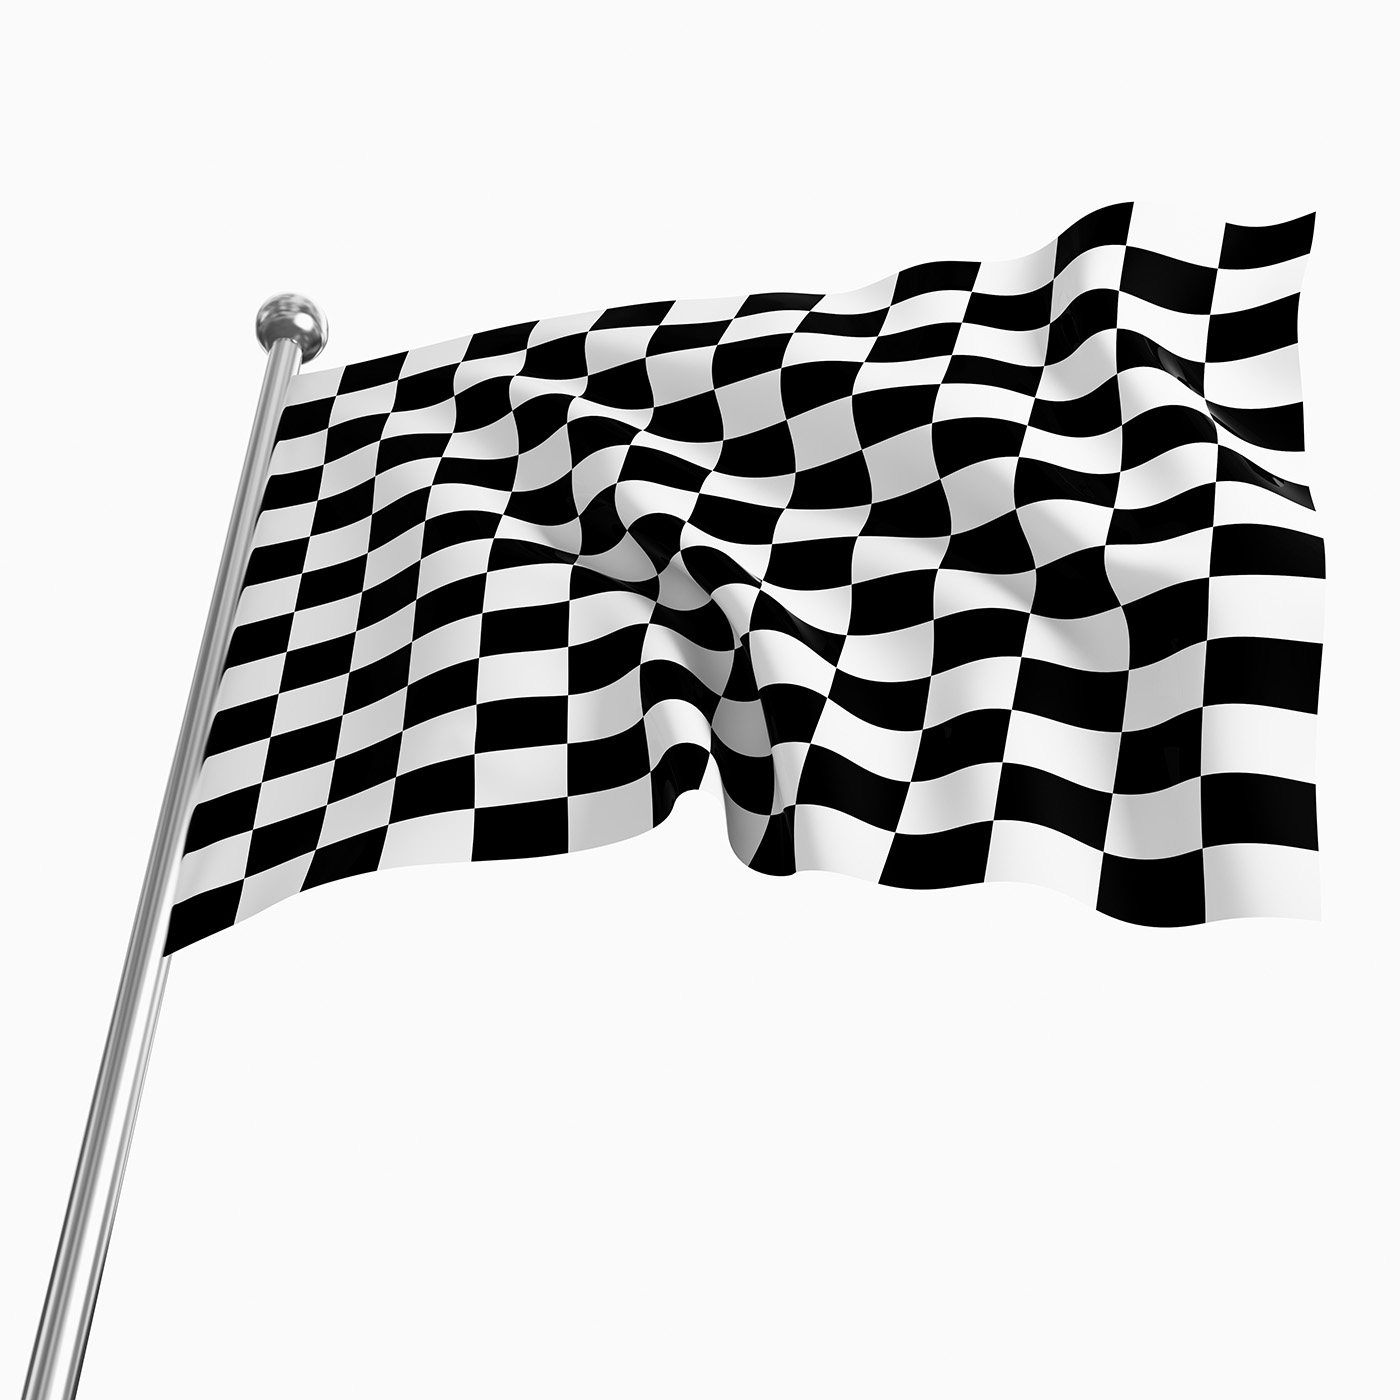 Close-up black and white checkered racing flag 50121